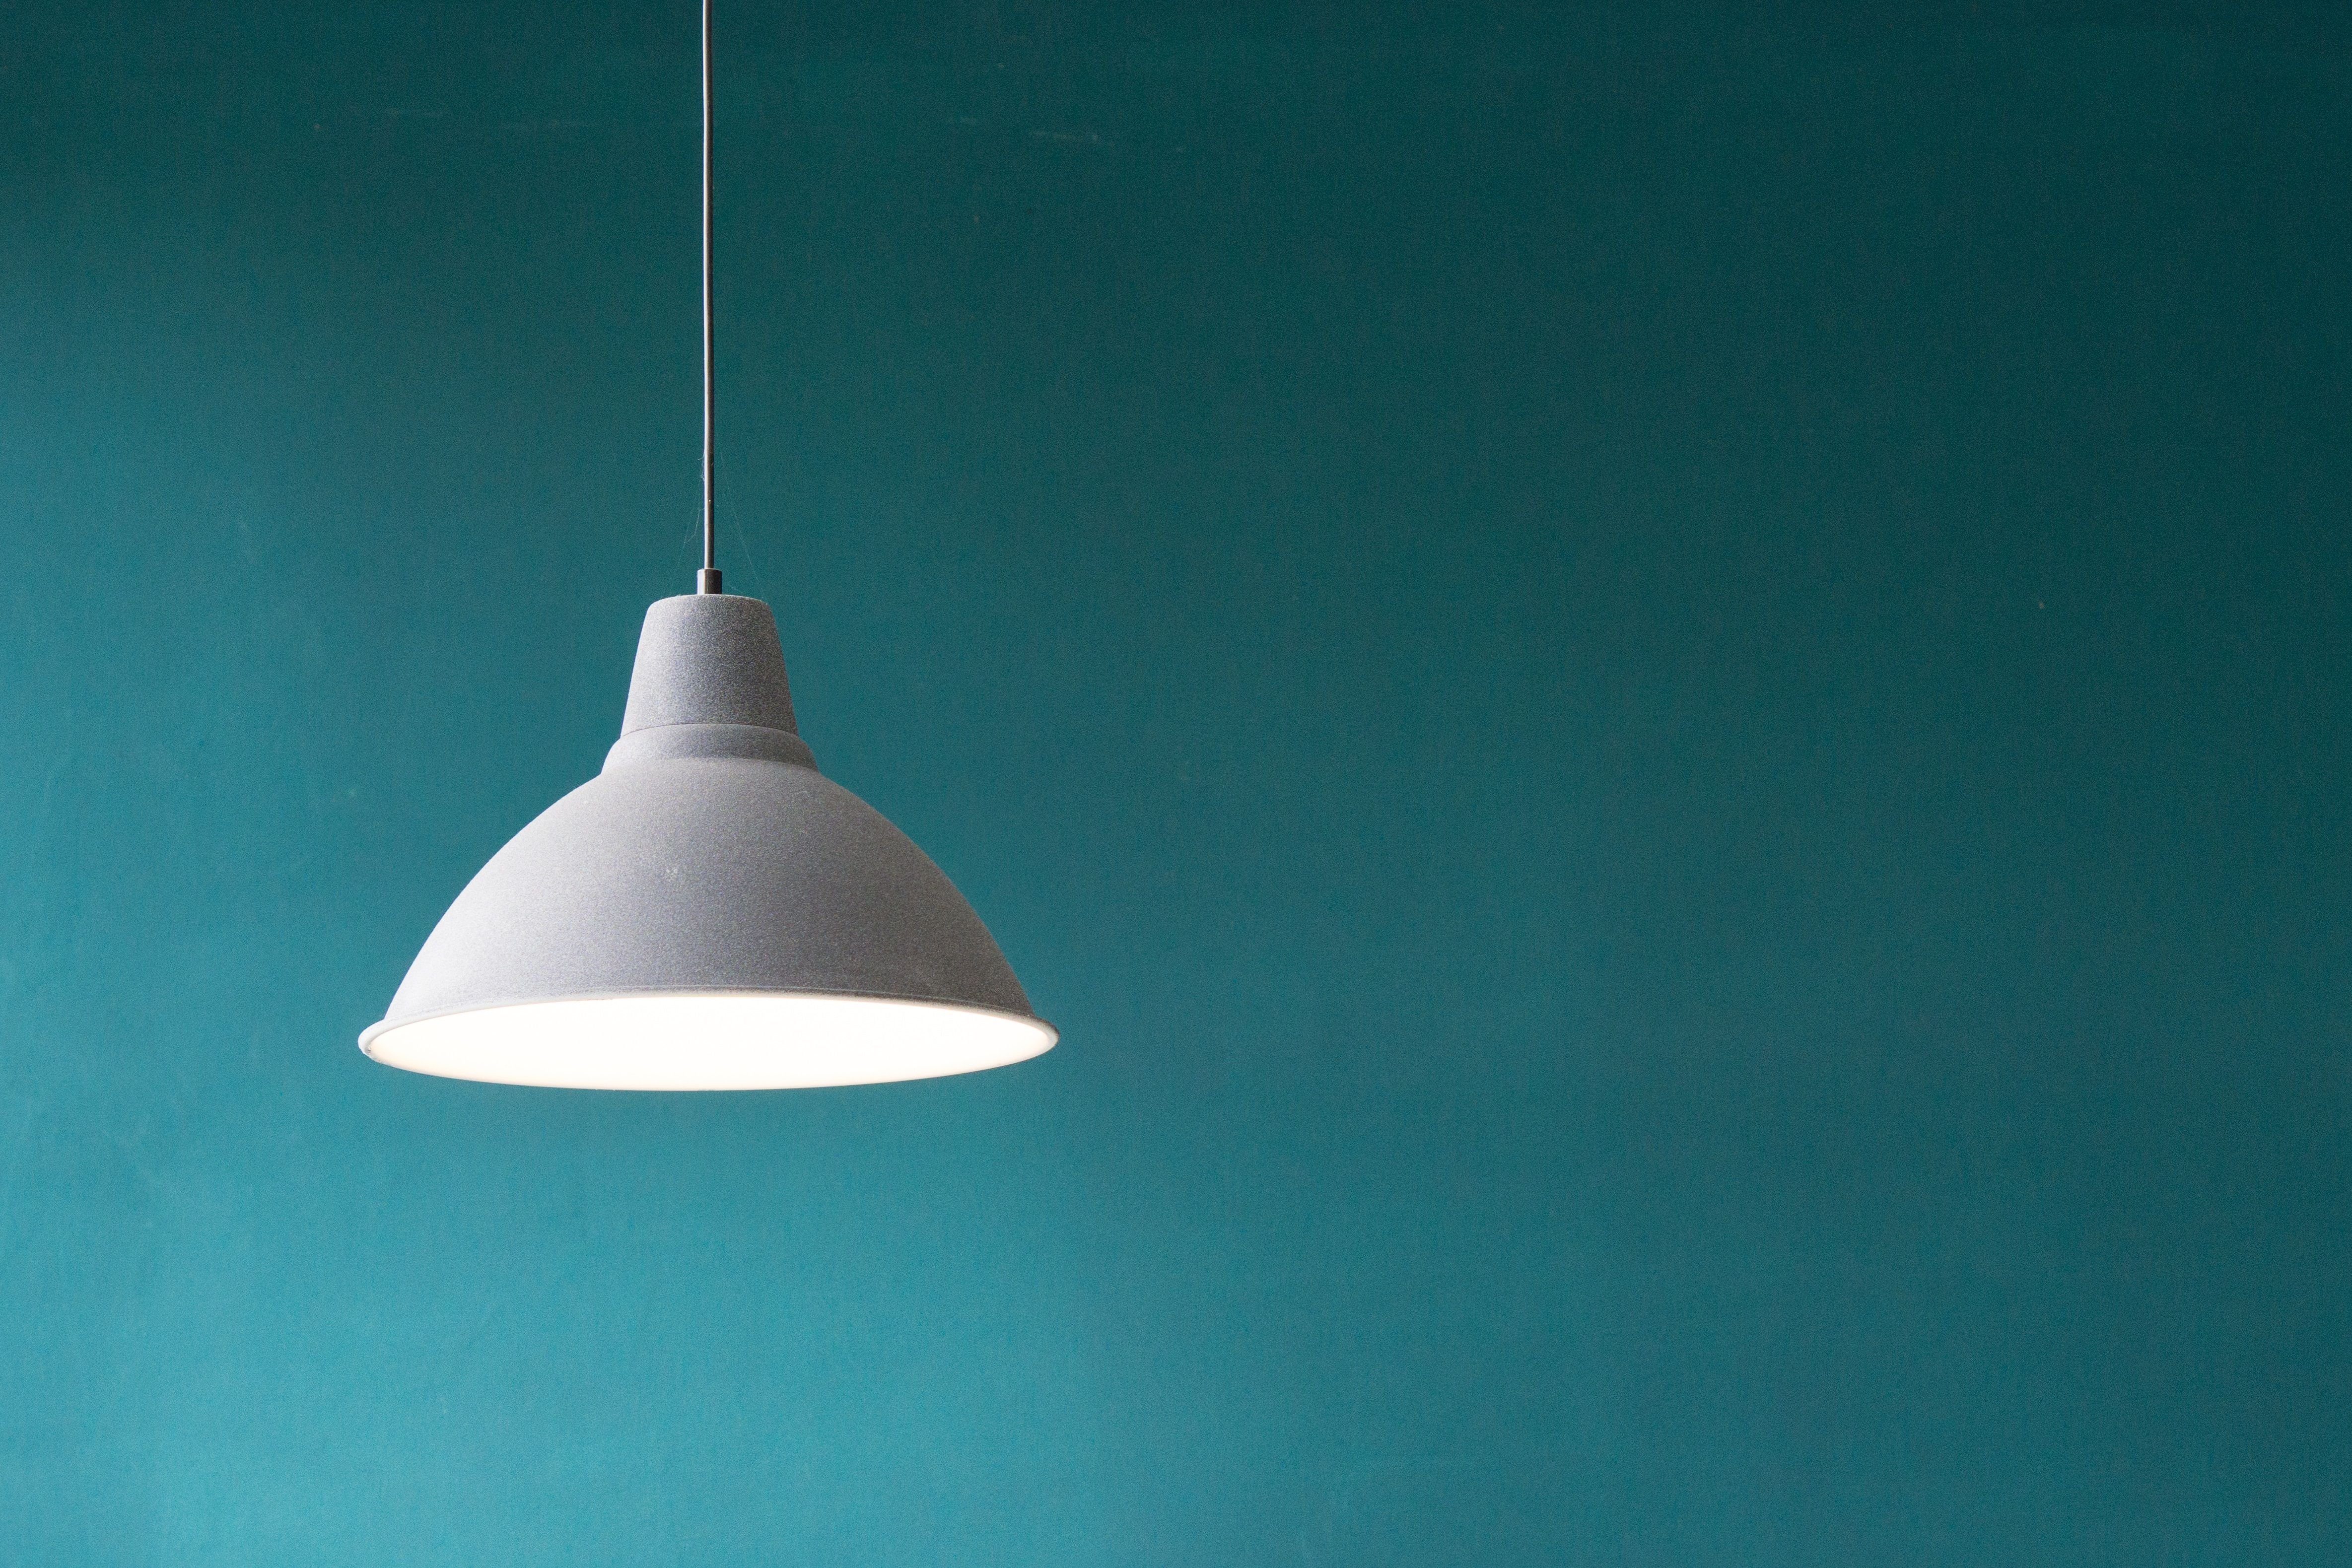 Lamp hanging from the ceiling